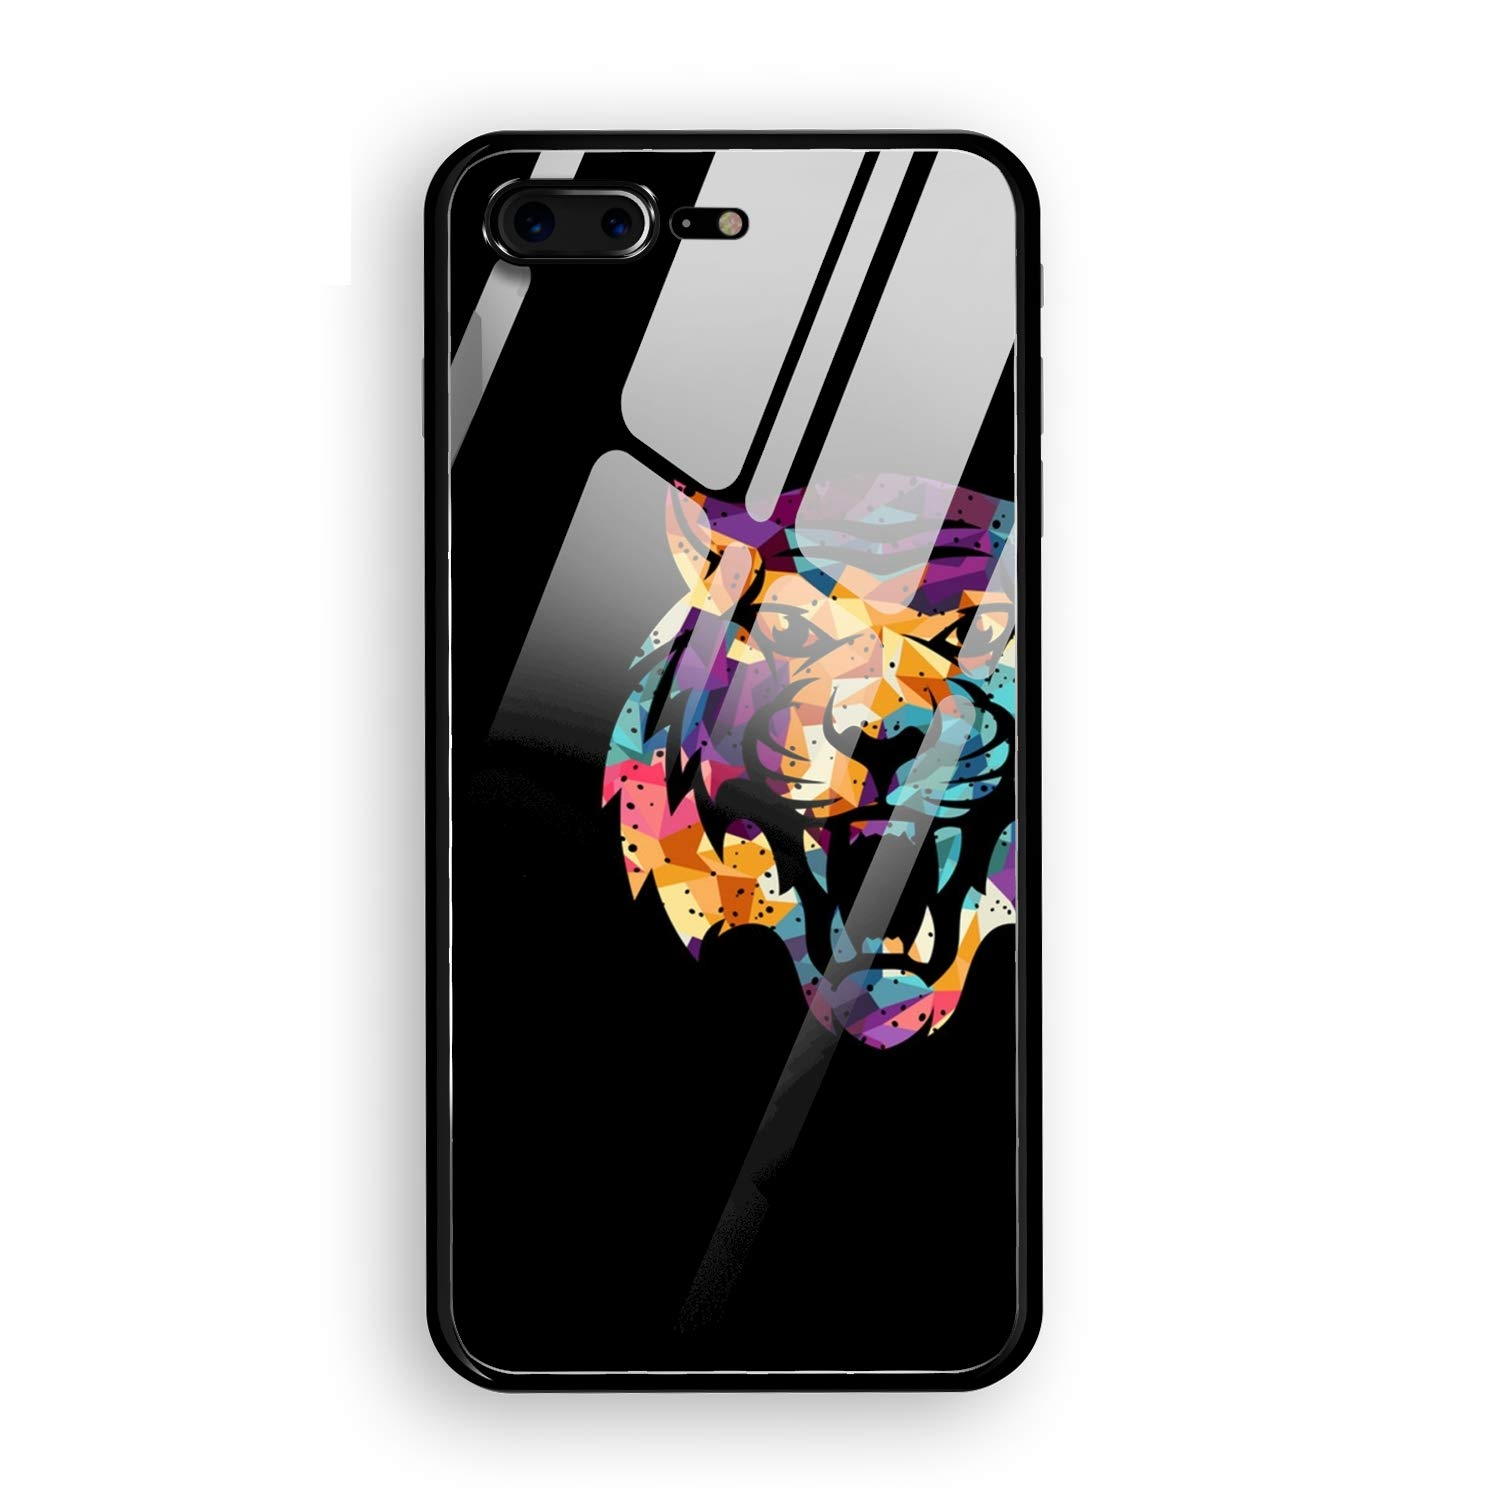 Amazon com: iPhone 8 Plus Case, Silicone Shockproof Tempered Glass